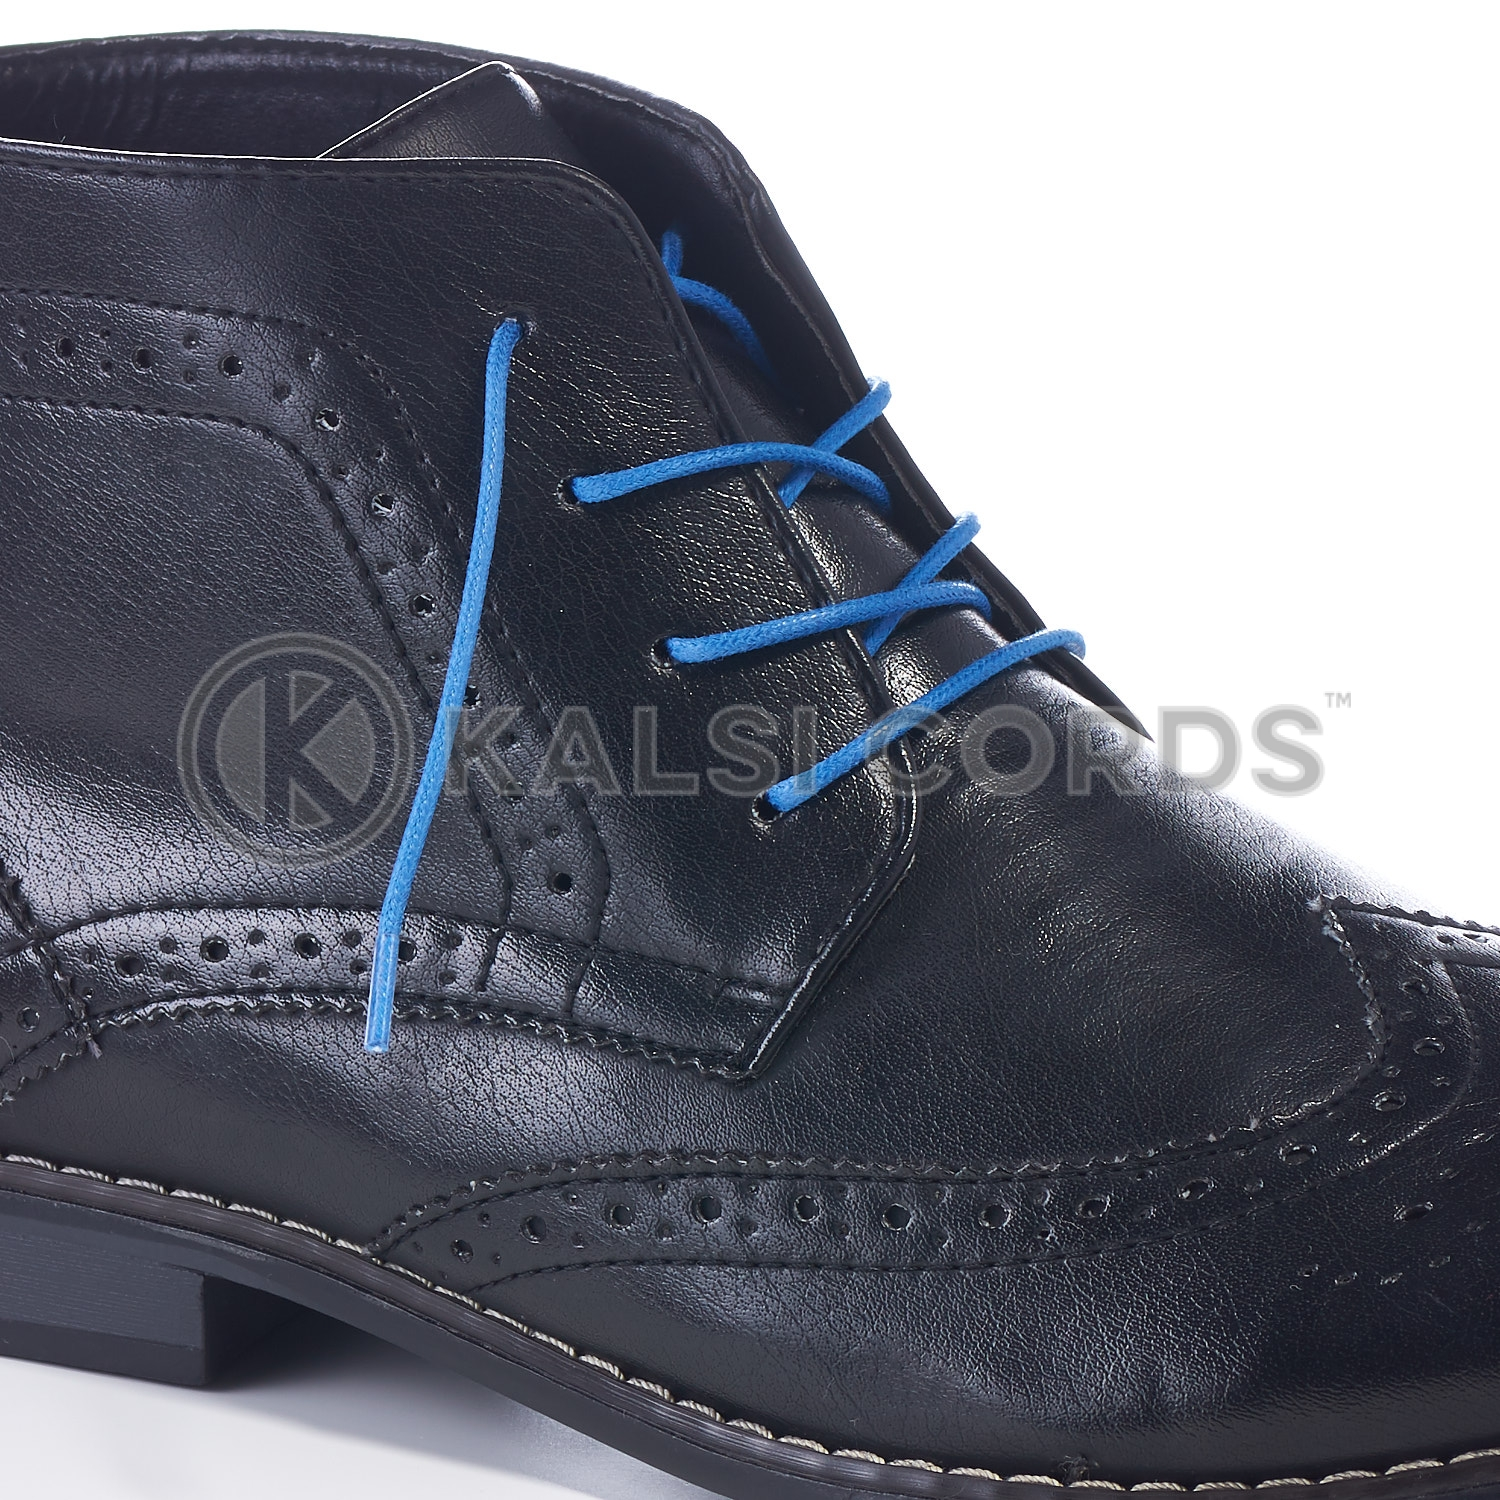 TE428 2mm Thin Fine Round Waxed Shoe Laces Cotton Blue Kalsi Cords